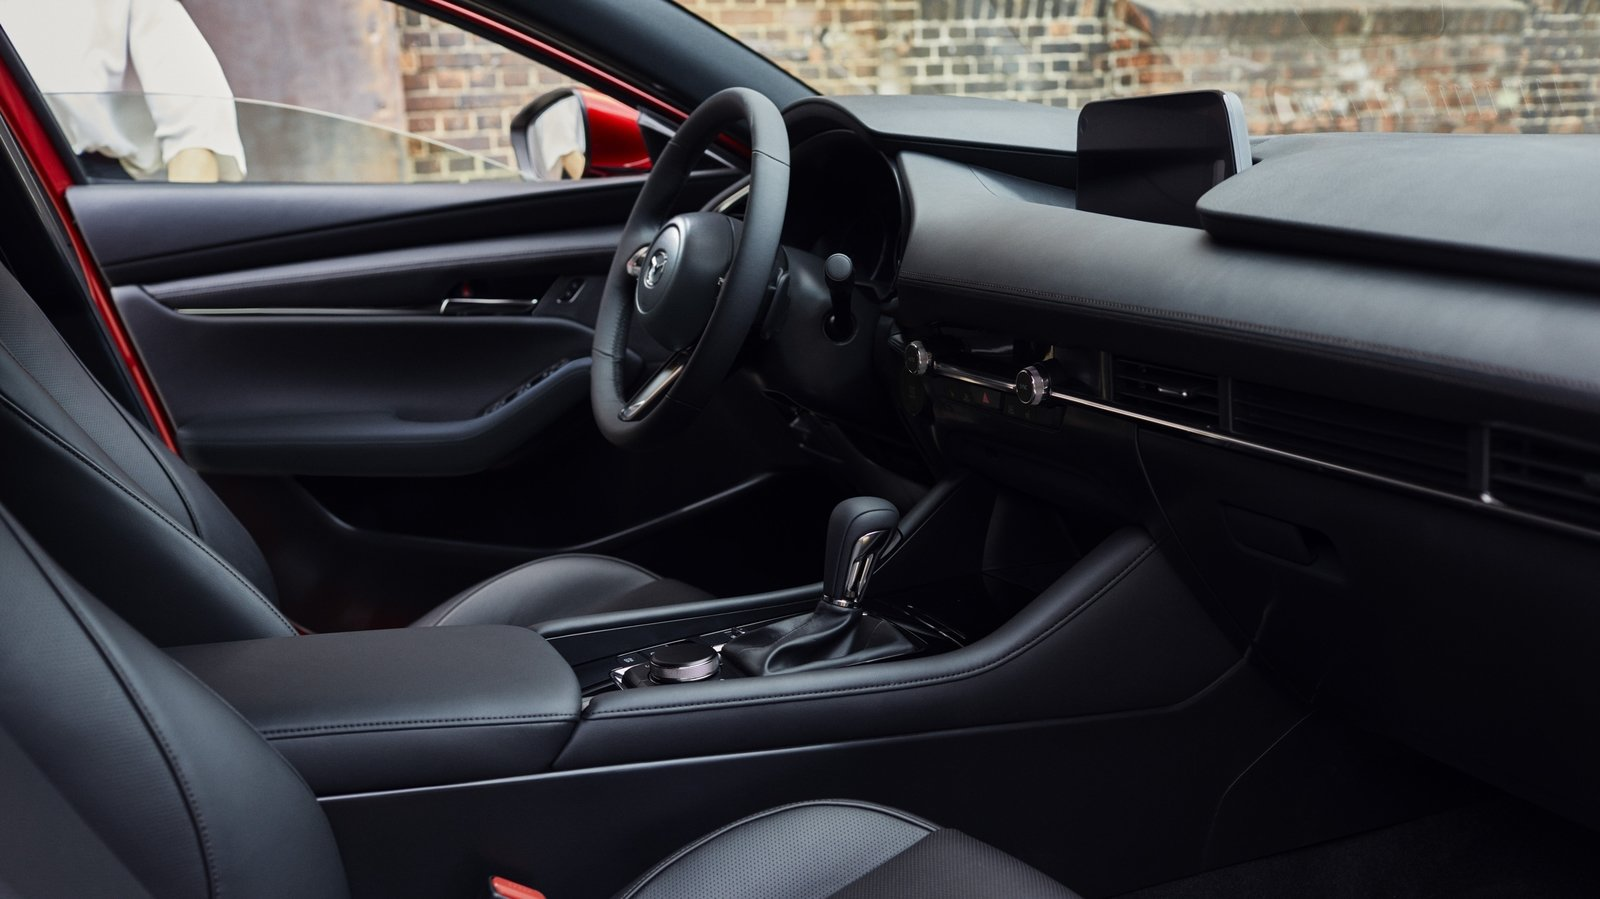 Mazda3 Moves Up The Premium Ladder With Gorgeous Interior